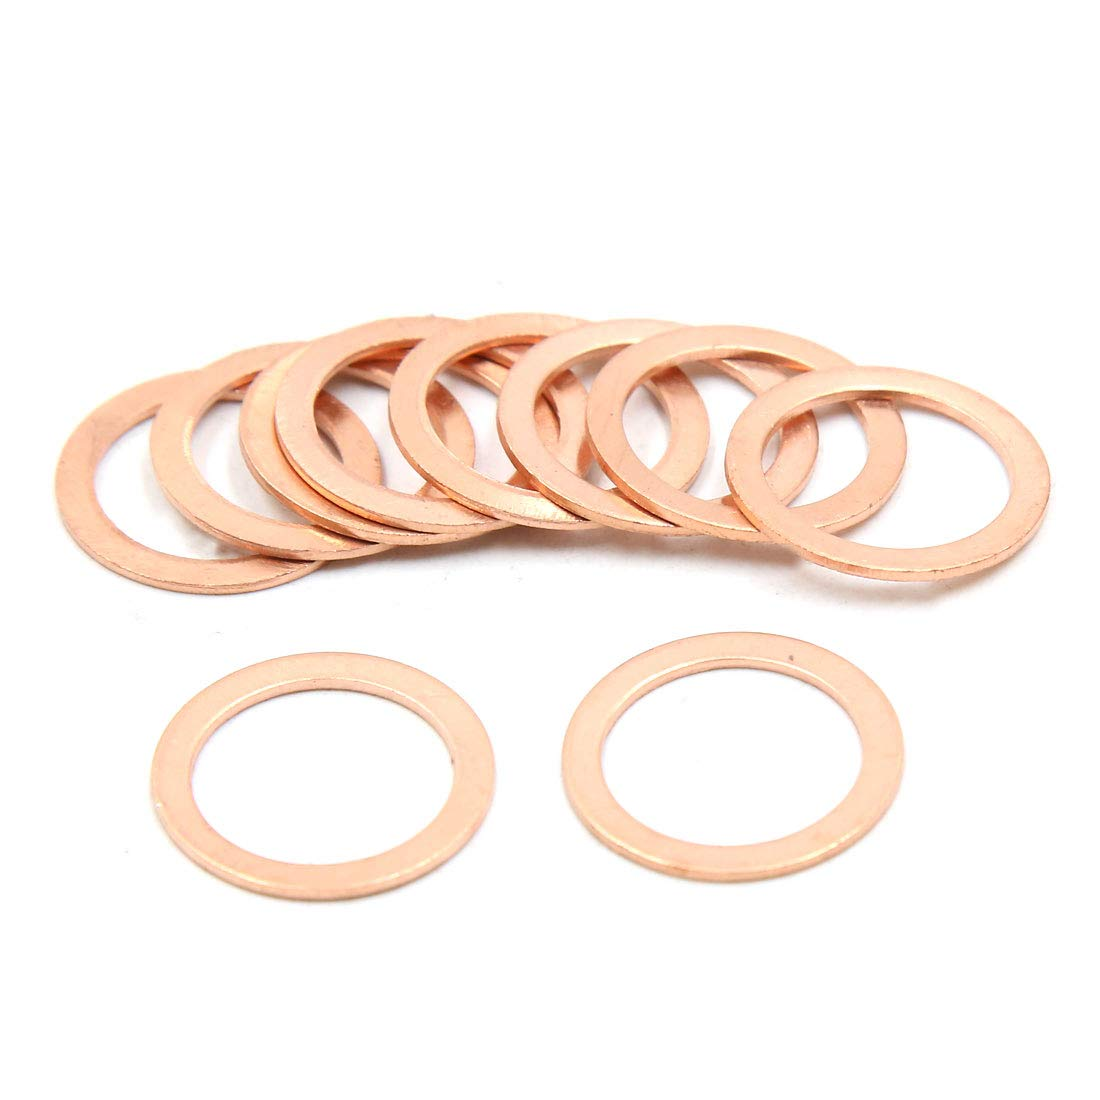 X AUTOHAUX Copper Flat Washers Car Engine Sealing Gaskets Plate Rings 17 x 23mm Dia 10pcs